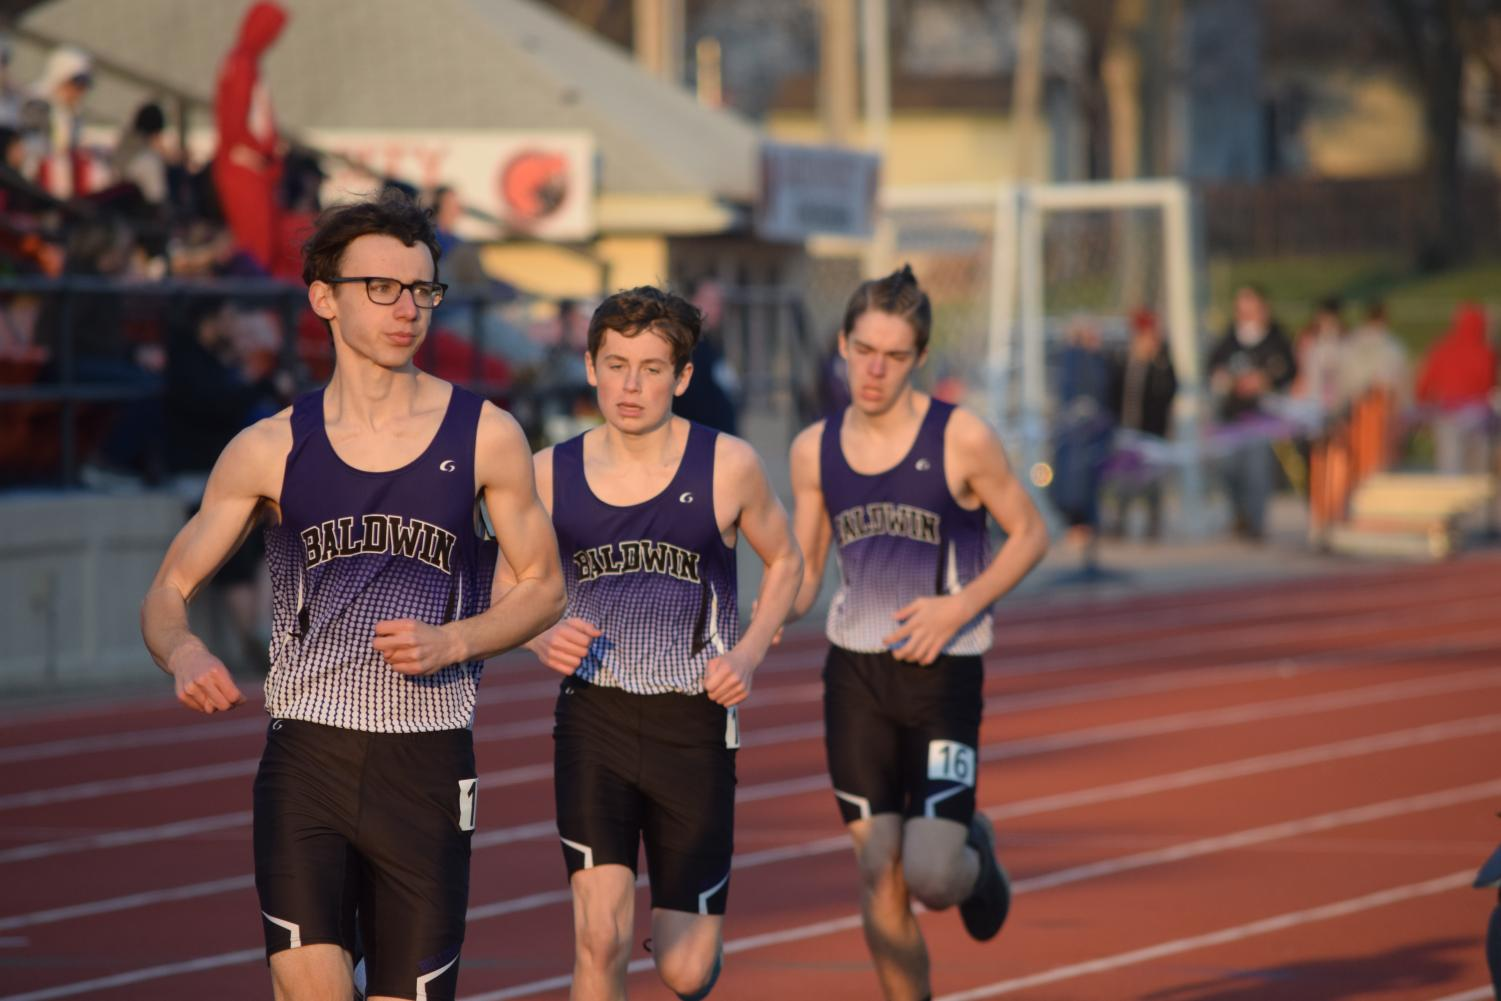 Jude Stacey, Collin Ediger, and Crayton Walters run the mile at the BIT track meet.